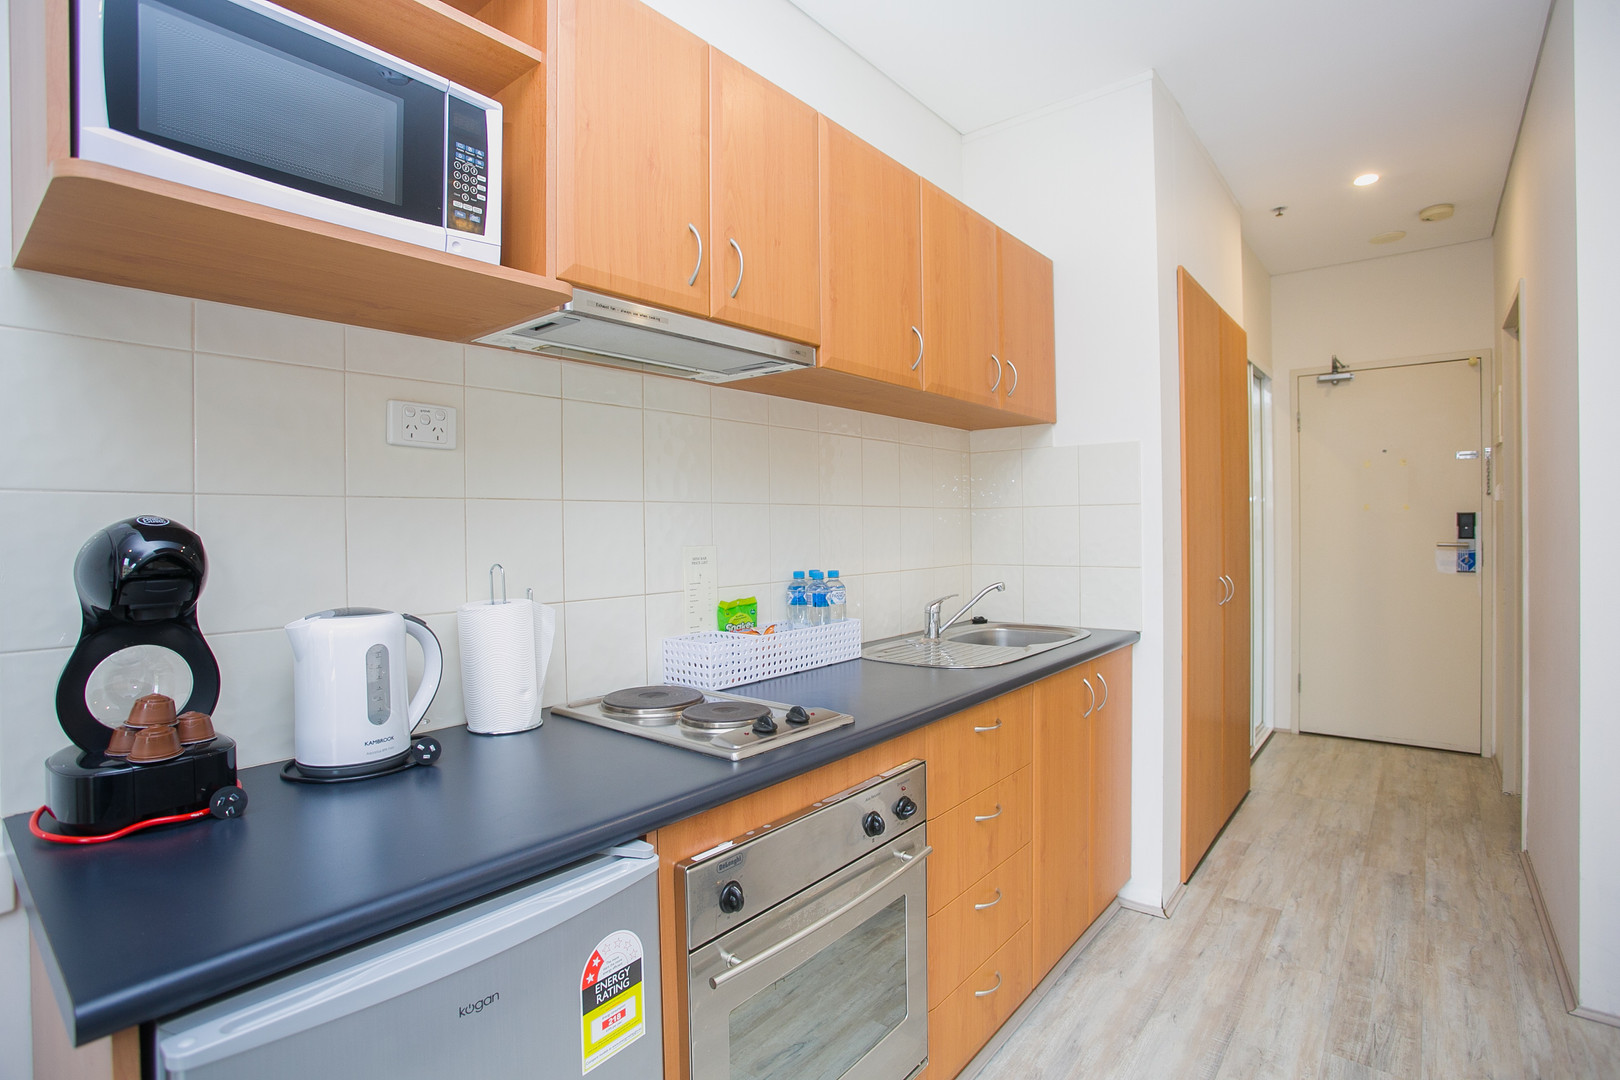 Studio Apartment Kitchen - Short Term Rental Perth CBD.jpg